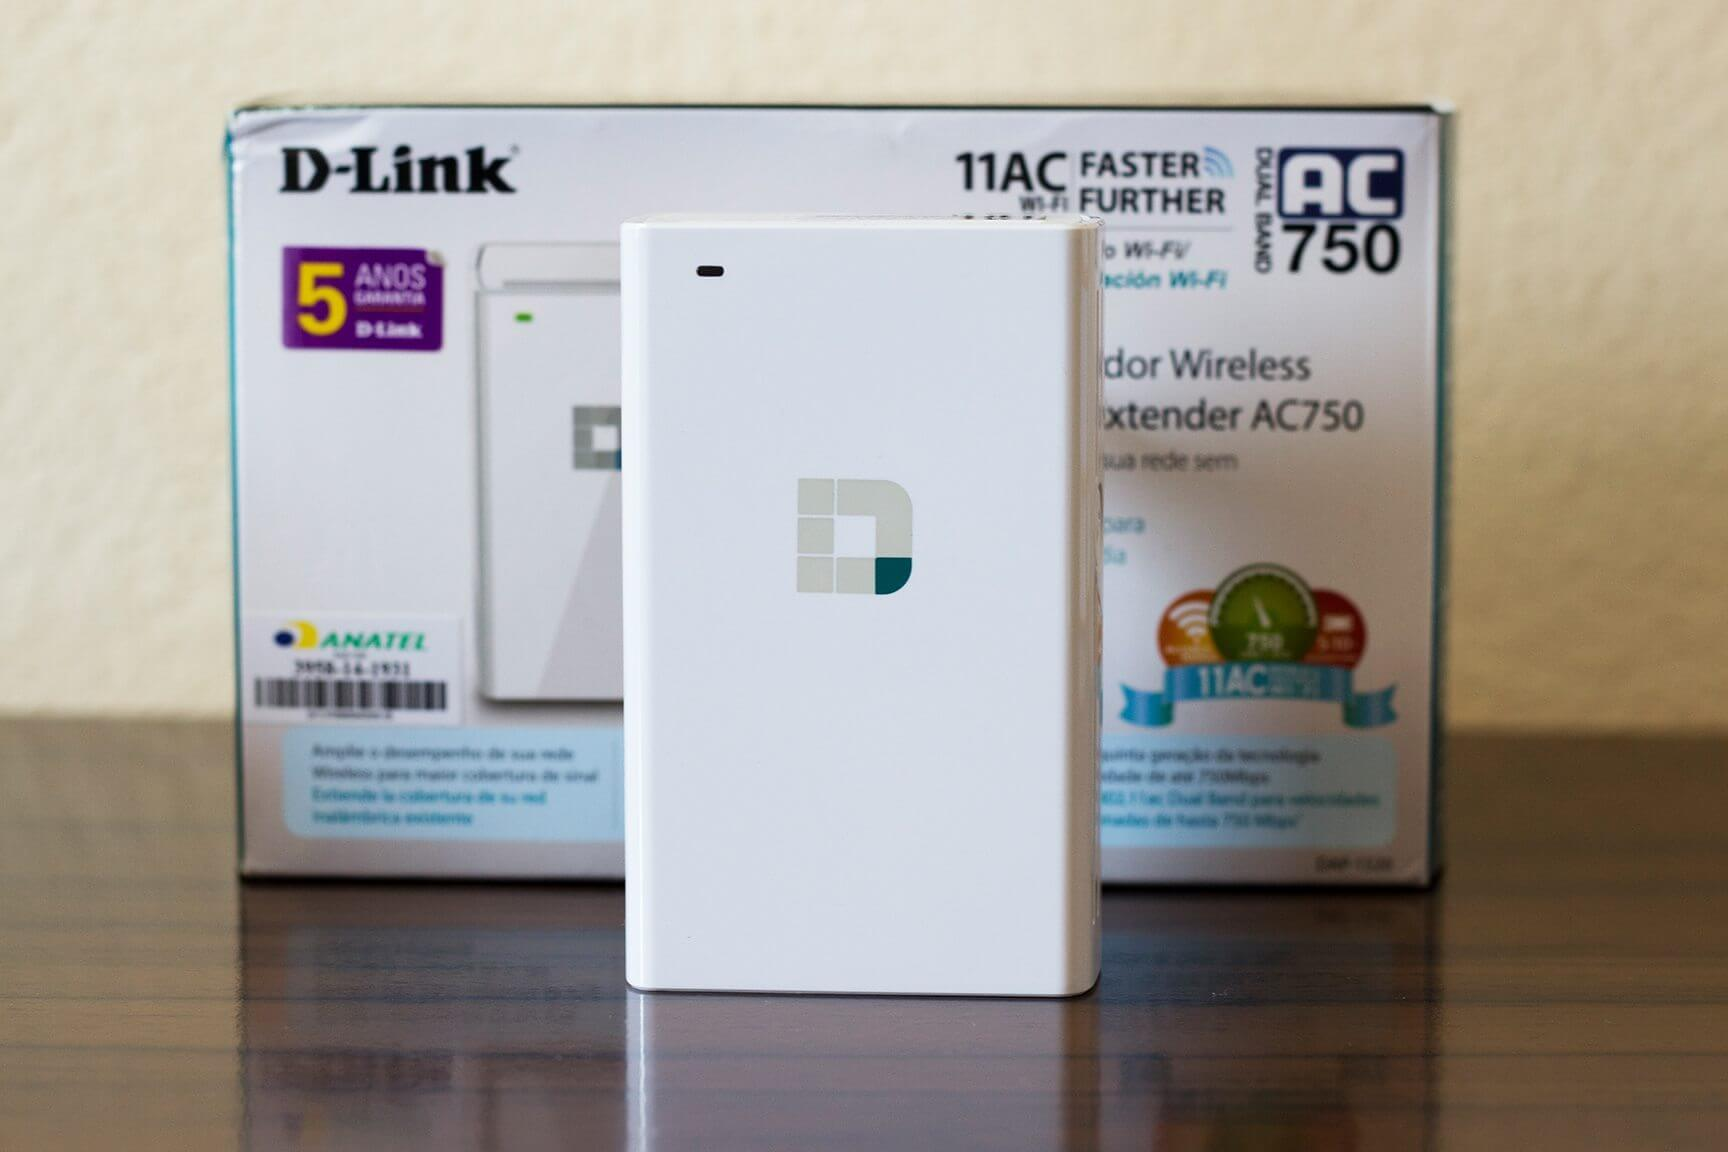 adaptador 0003 d link dap 1520 2 - Review D-Link DAP-1520 - Repetidor Wireless Dual Band